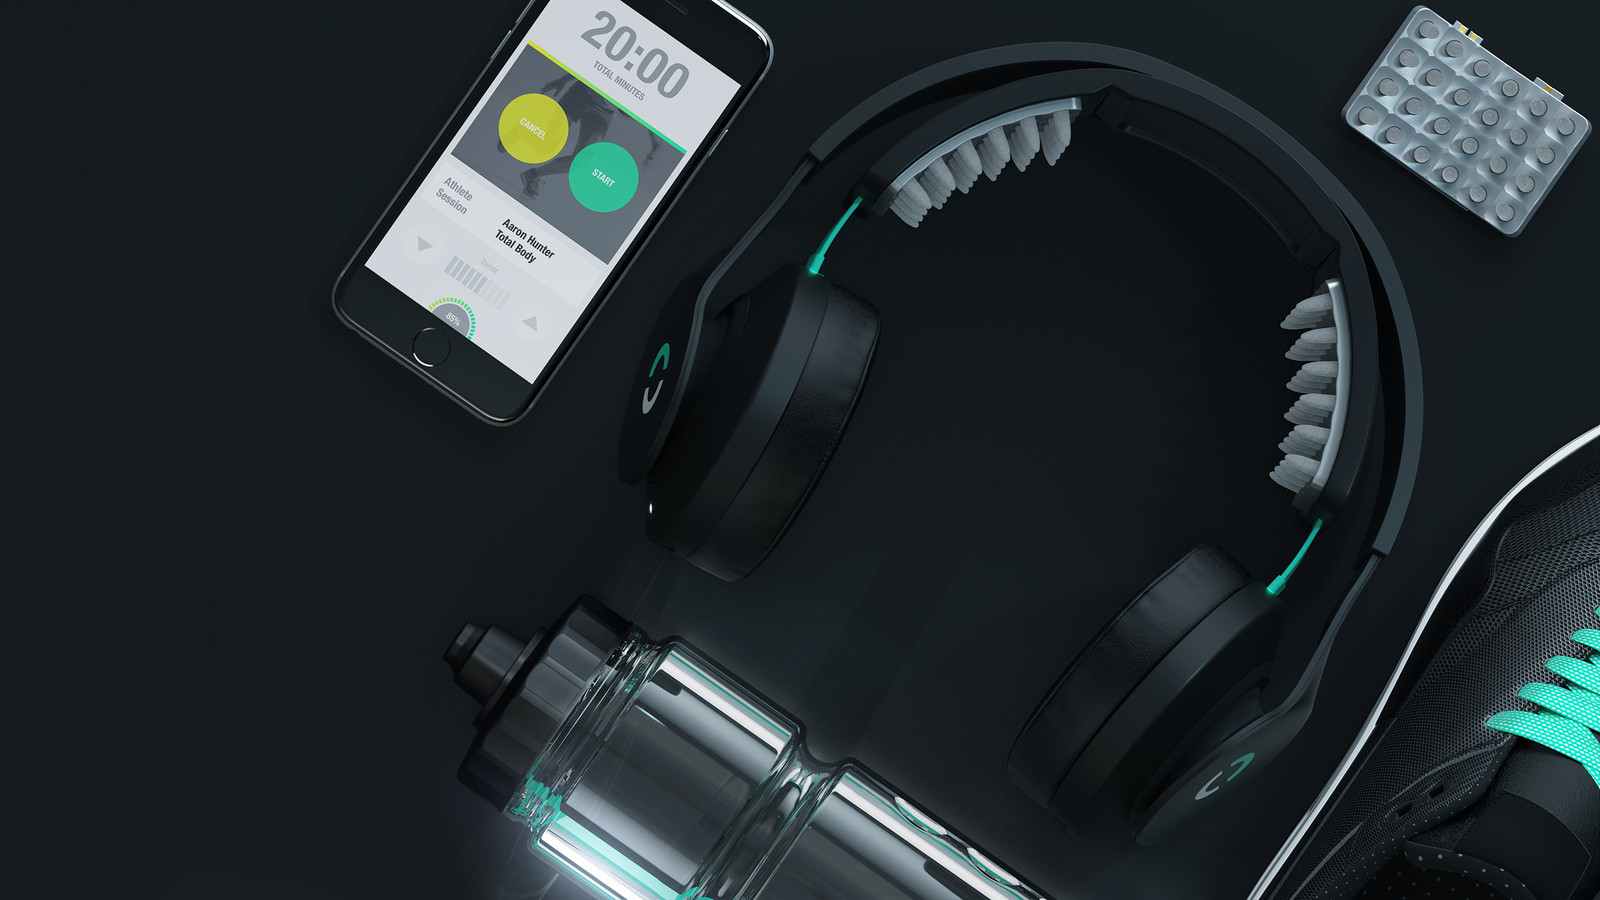 Halo Sport connects to your phone via Bluetooth using the Halo Sport application.